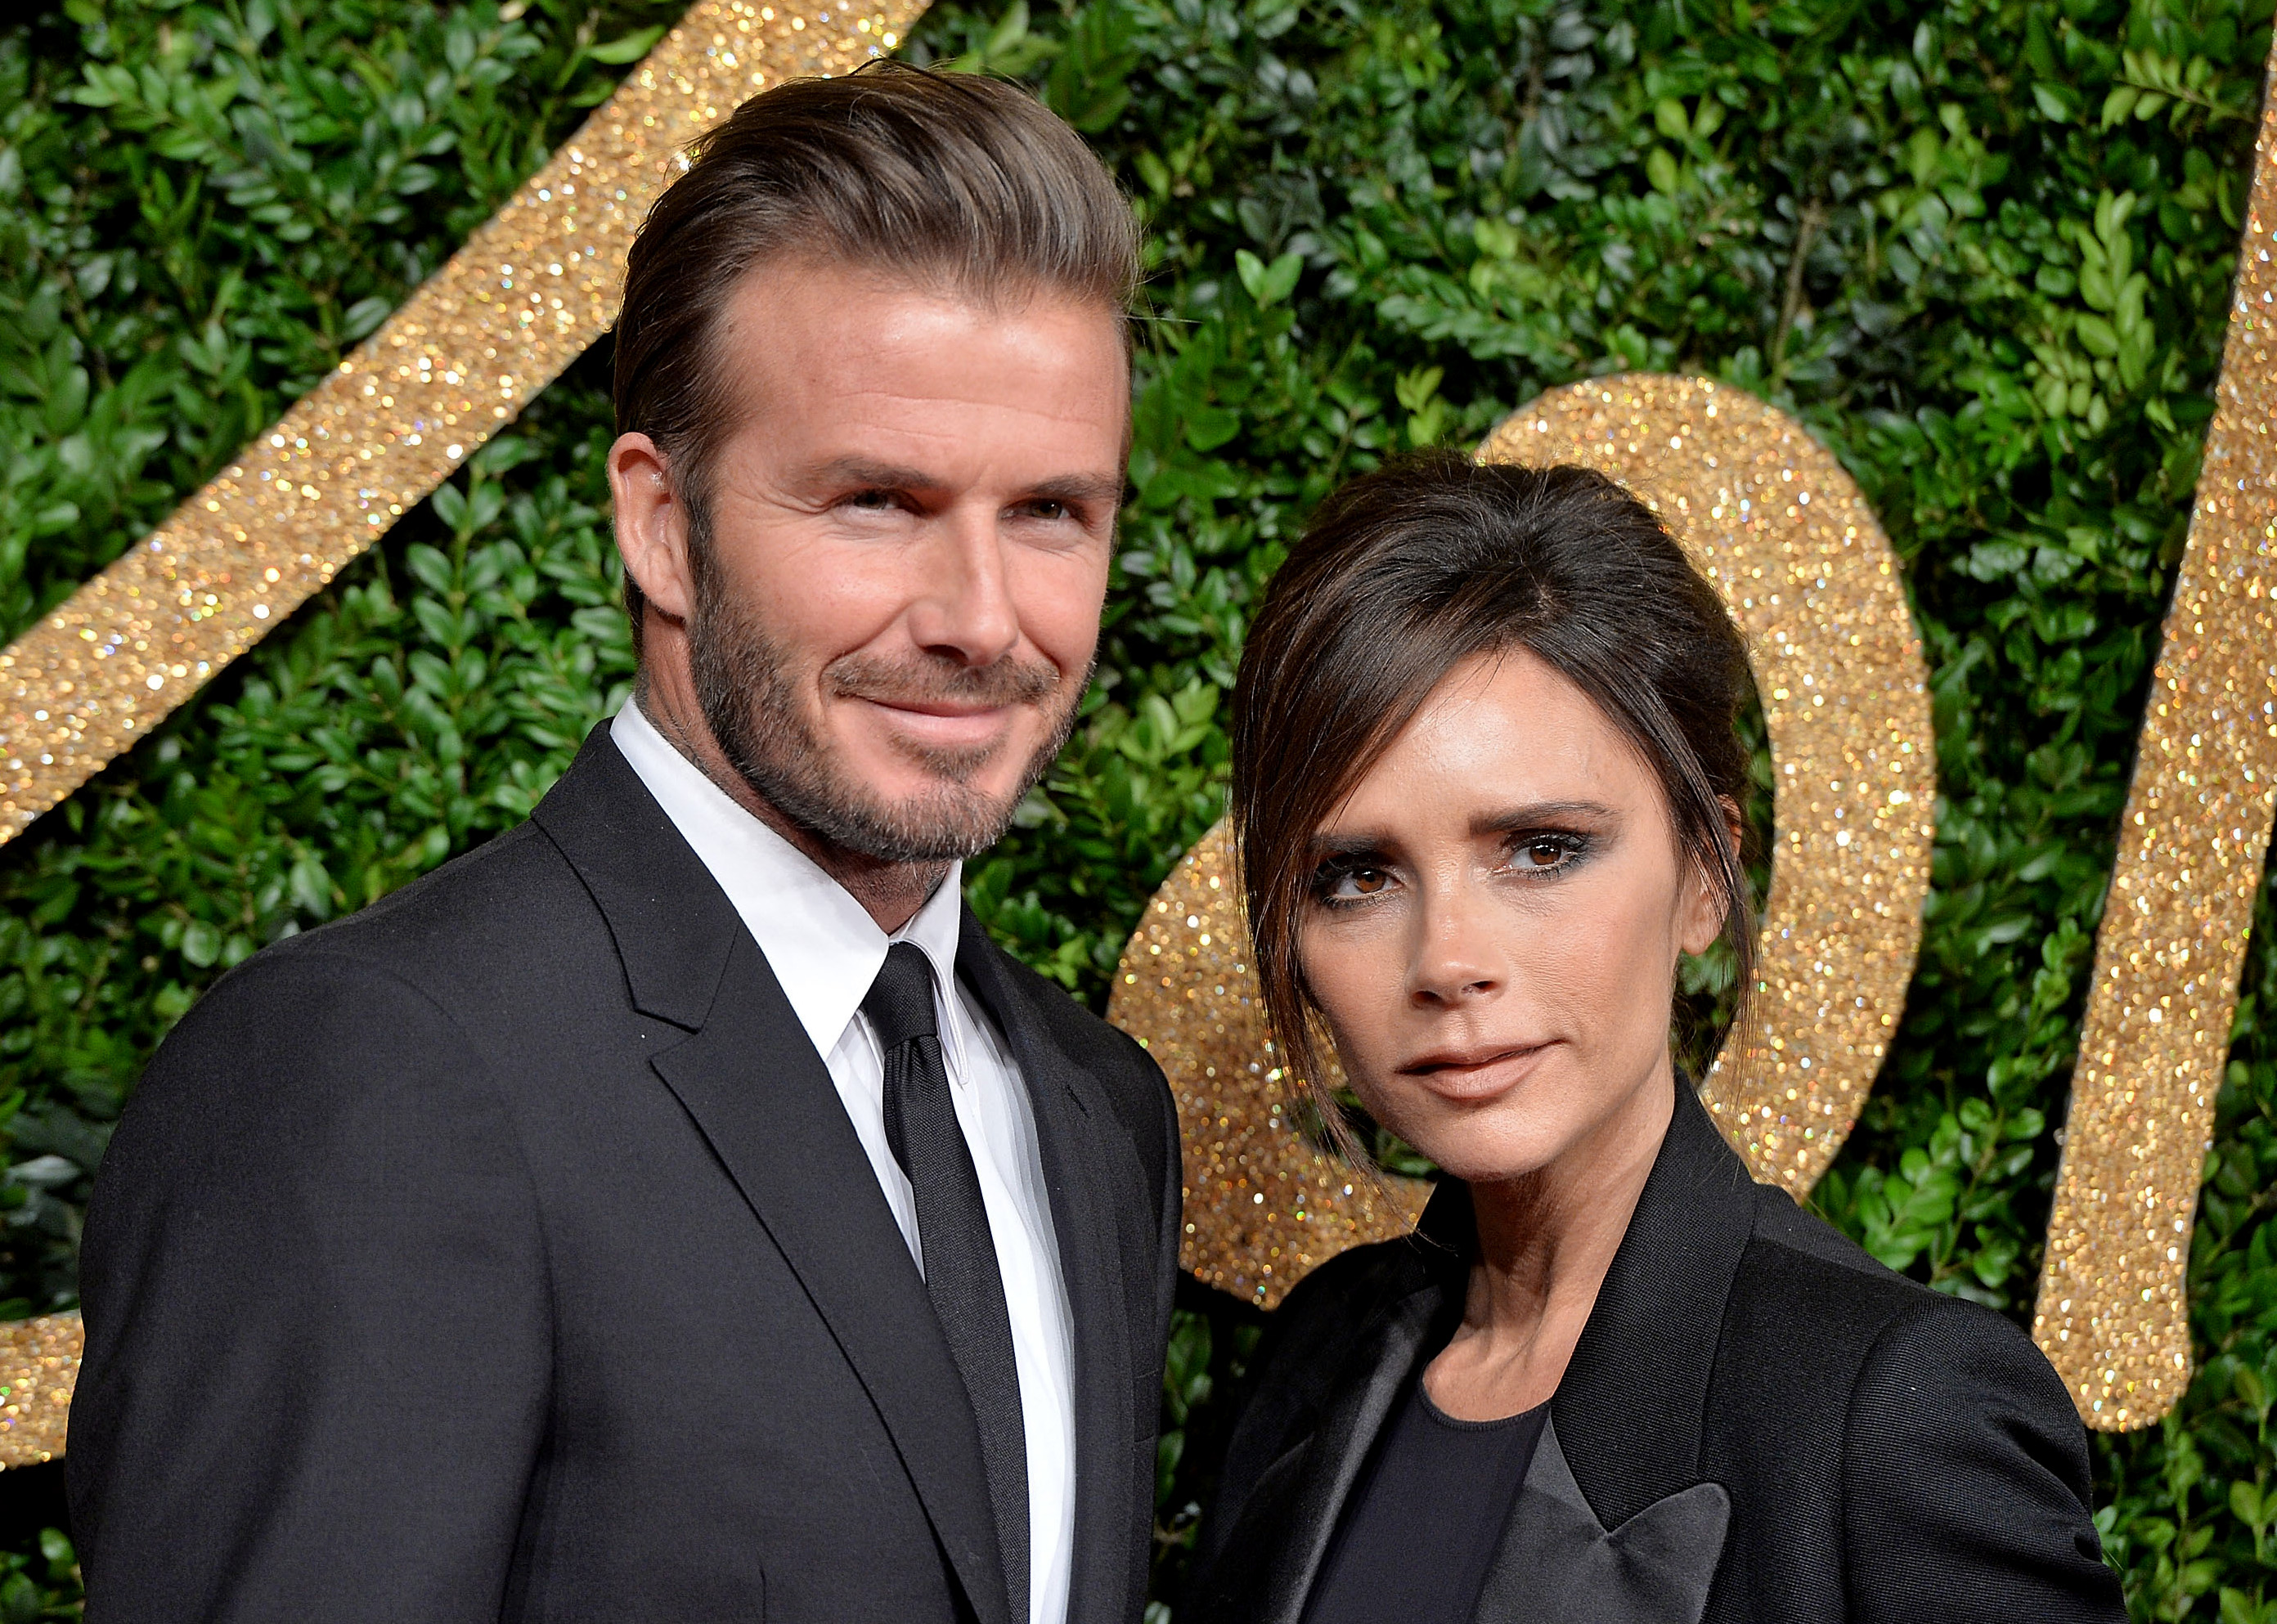 "David and Victoria Beckham ""width ="" 2784 ""height ="" 1986 ""srcset ="" https: // www. top5.com/wp-content/uploads/201/07/07/david-and-victoria-beckham-.jpg 2784w, https://www.top5.com/wp-content/uploads/2013/07/david- and- victoria-beckham - 300x214.jpg 300w, https://www.top5.com/wp-content/uploads/2013/07/david-and-victoria-beckham--768x548.jpg 768w, https: // www , top5.com/wp-content/uploads/2013/07/david-and-victoria-beckham--1024x730.jpg 1024w ""Sizes ="" (Max Width: 2784px) 100vw, 2784px"